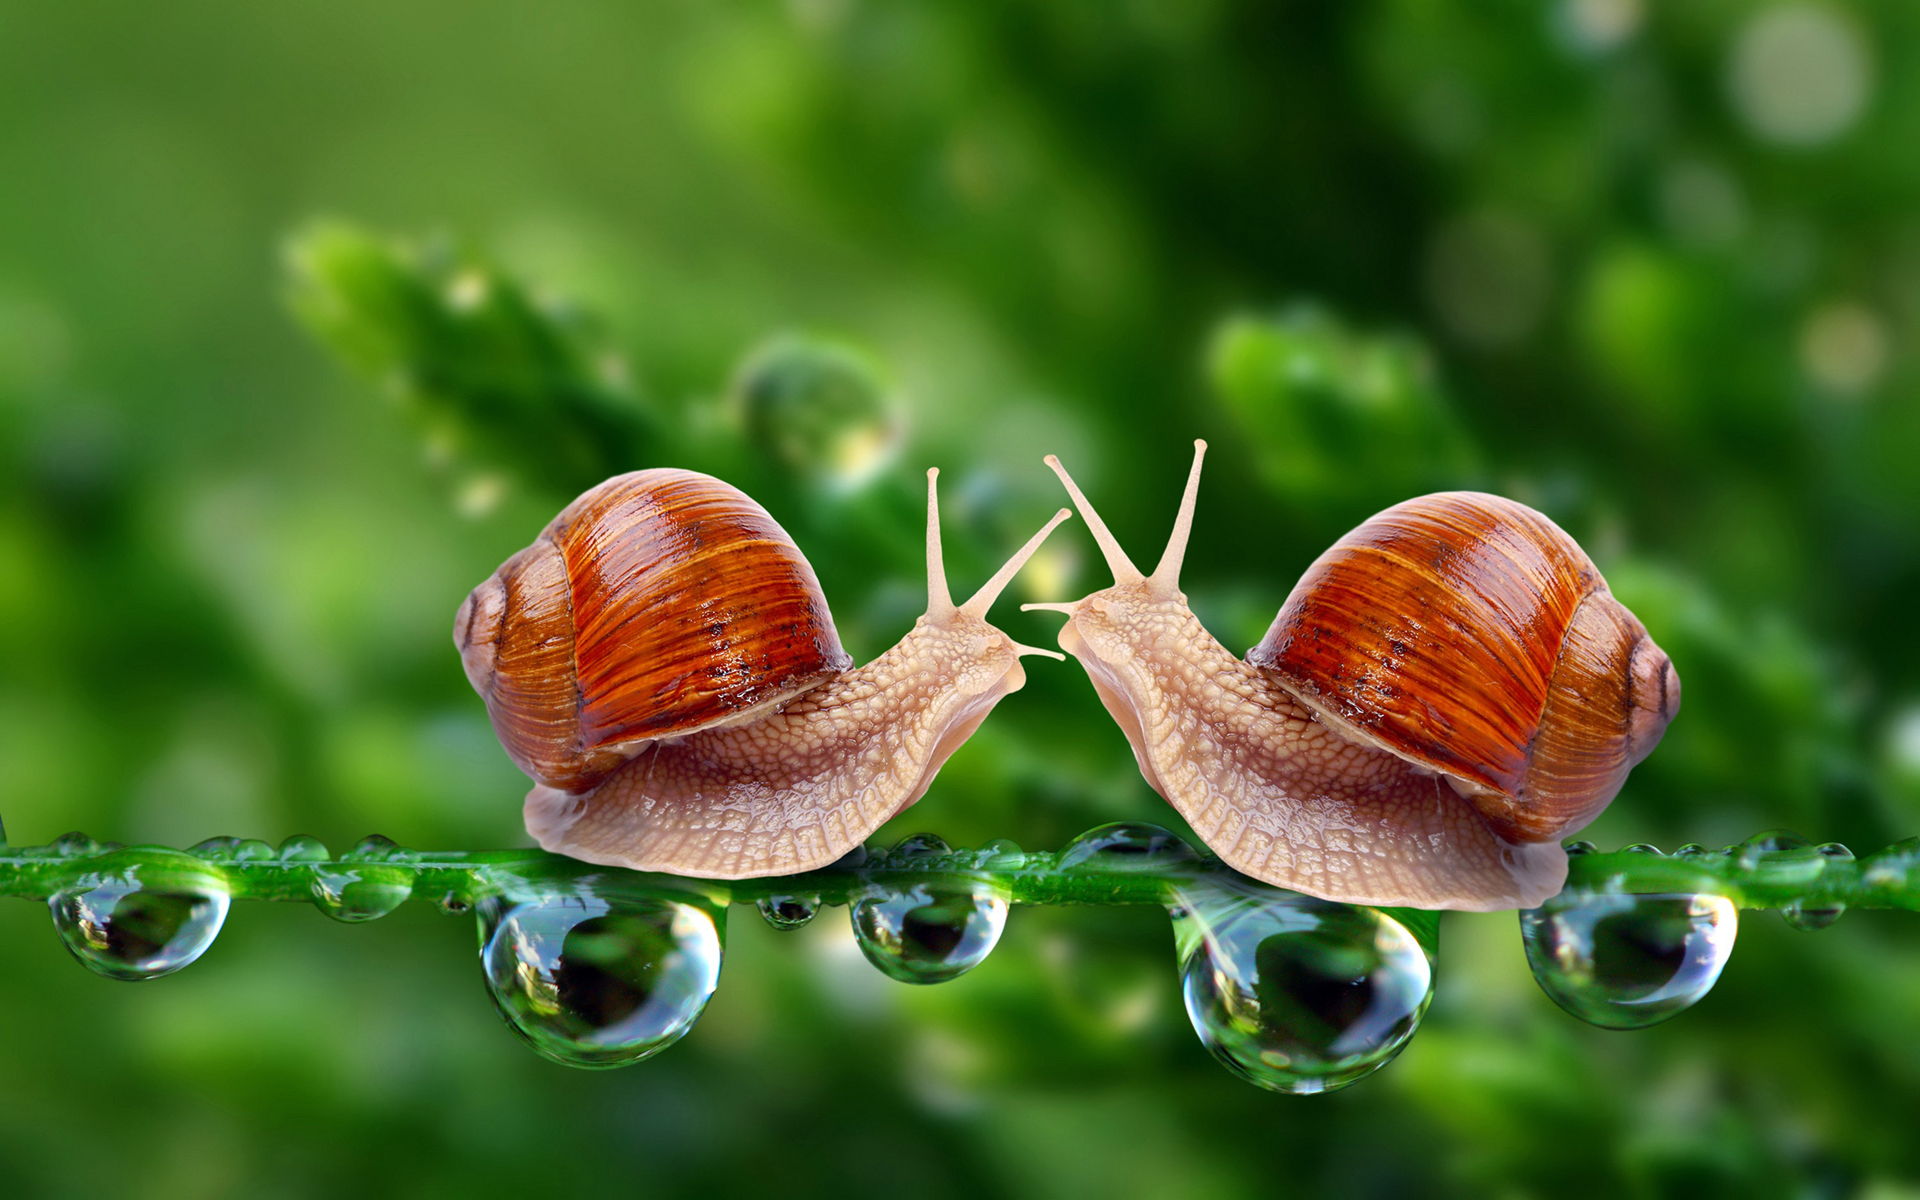 Two snails photo